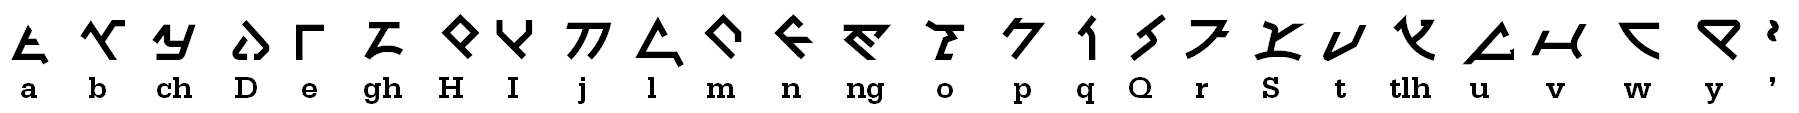 The Klingon pIqaD alphabet , based on the appearance in Star Trek: Discovery